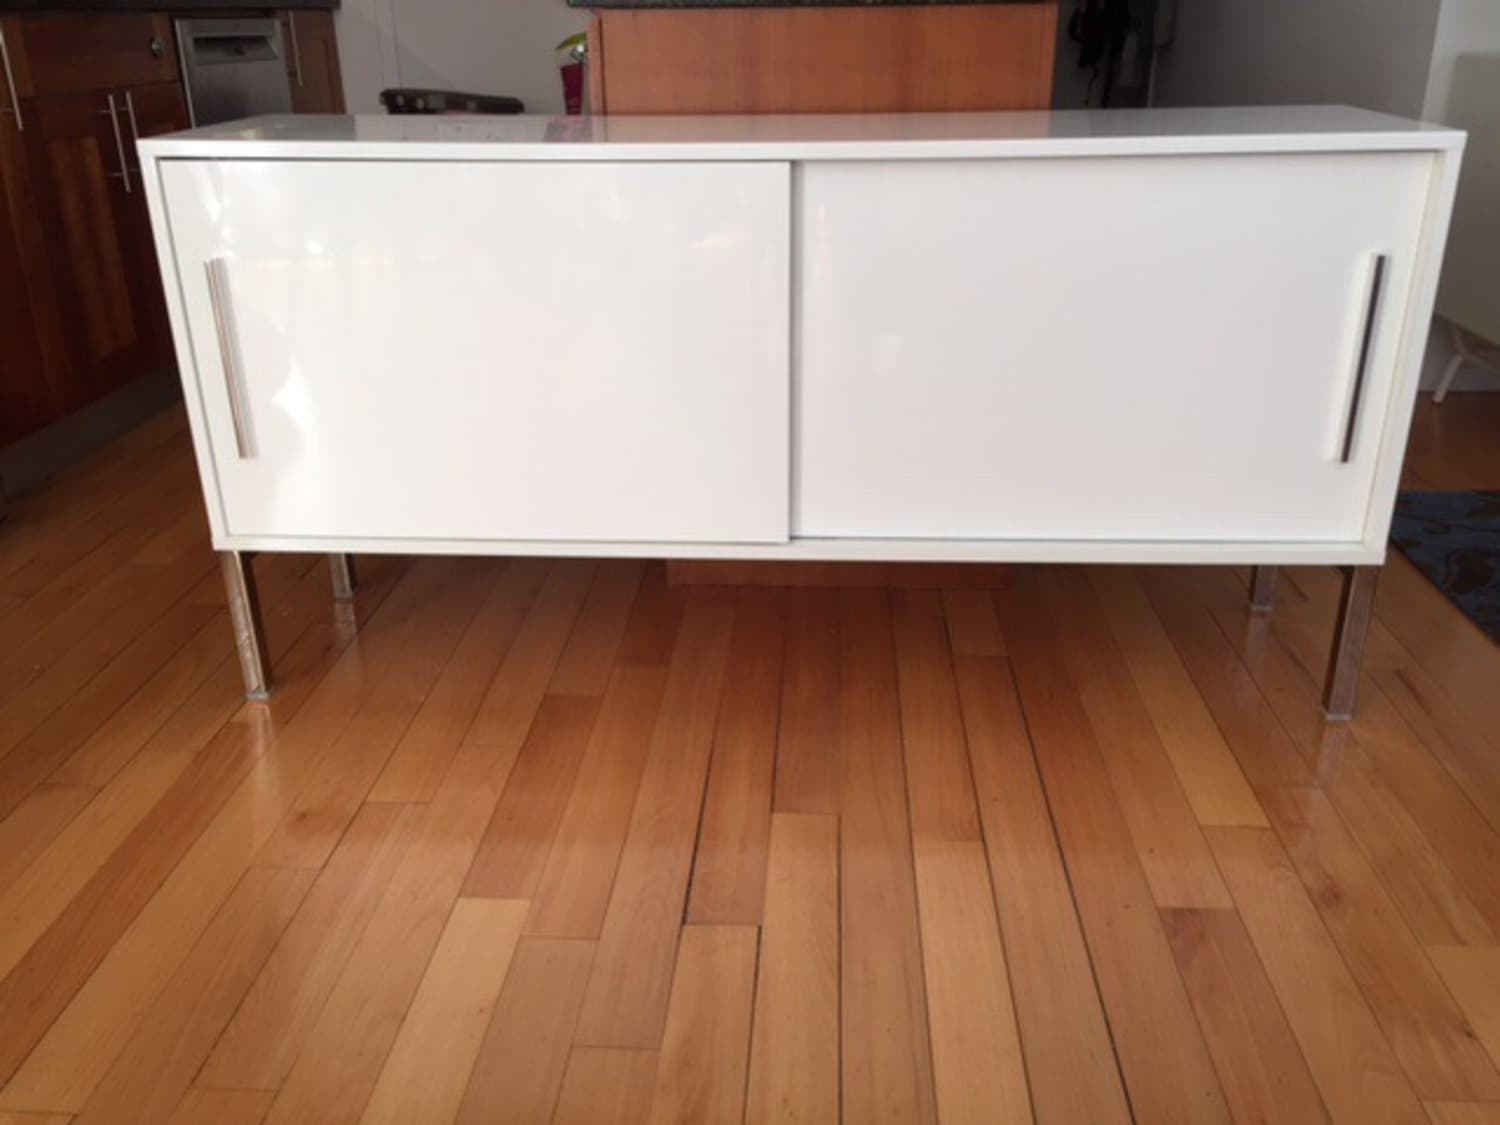 Ikea Torsby Credenza : Ikea torsby sideboard price drop sunday only apartment therapy s